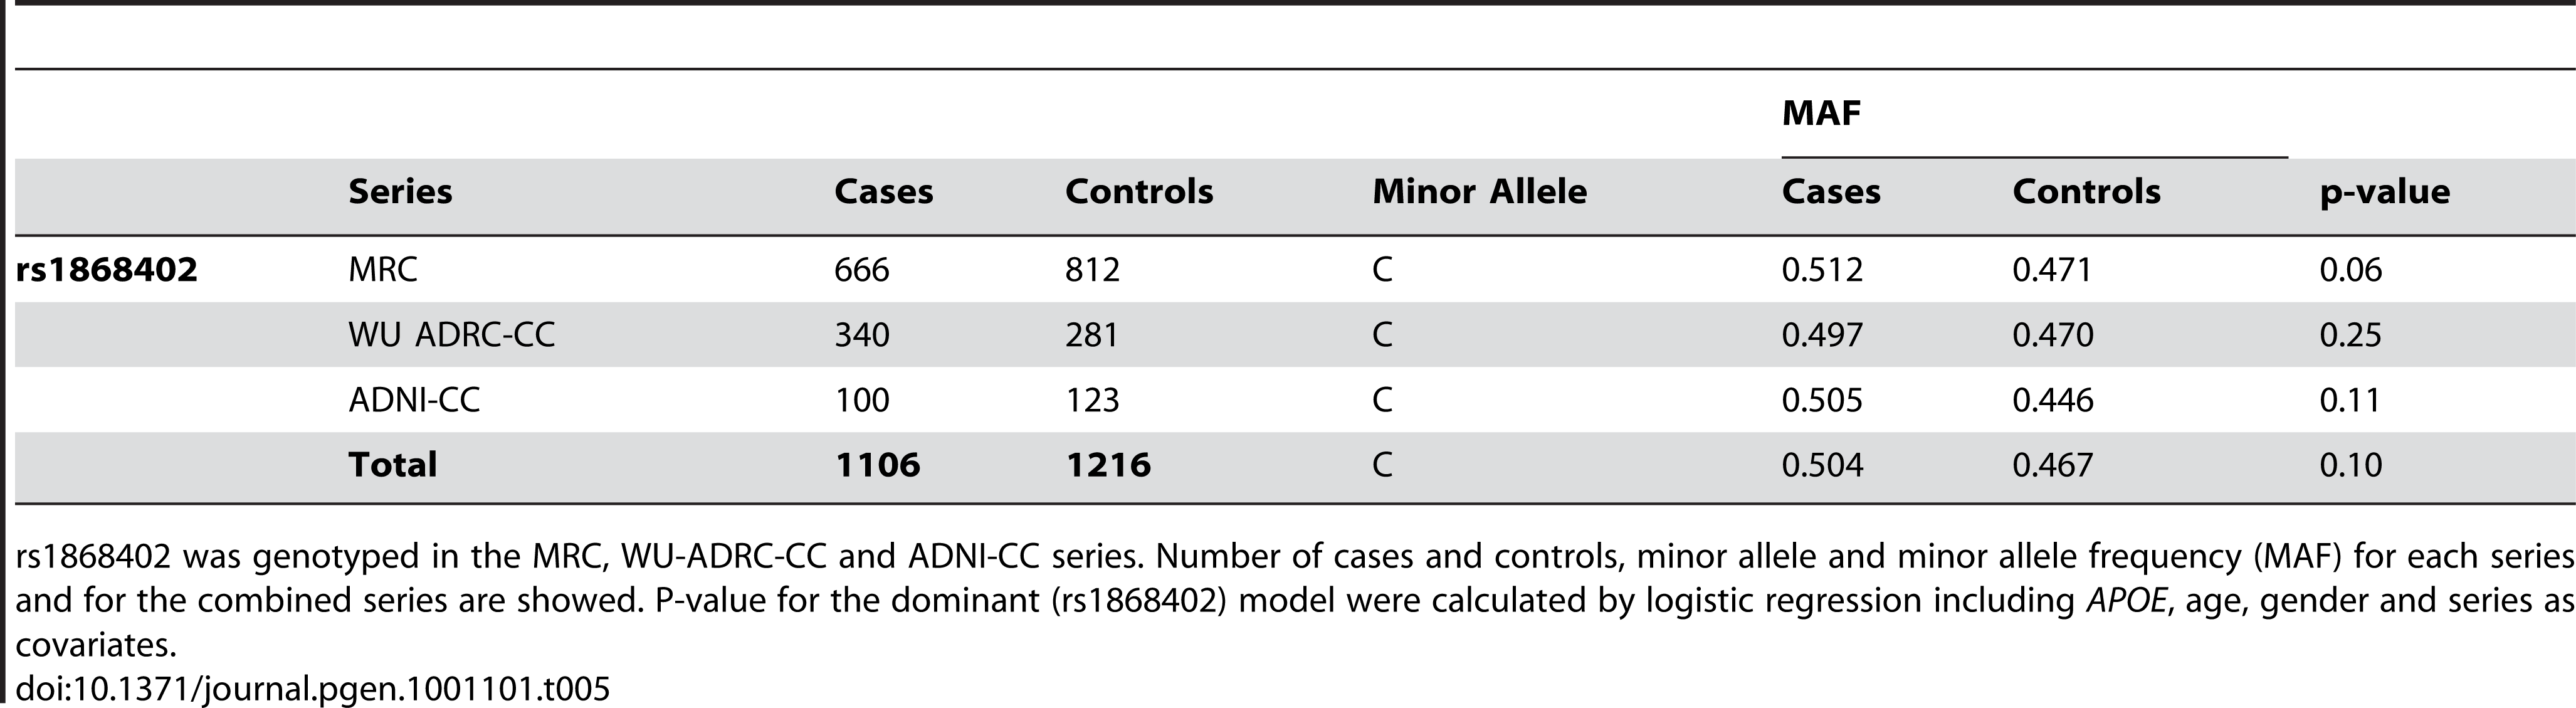 Rs1868402 is not associated with risk for AD.